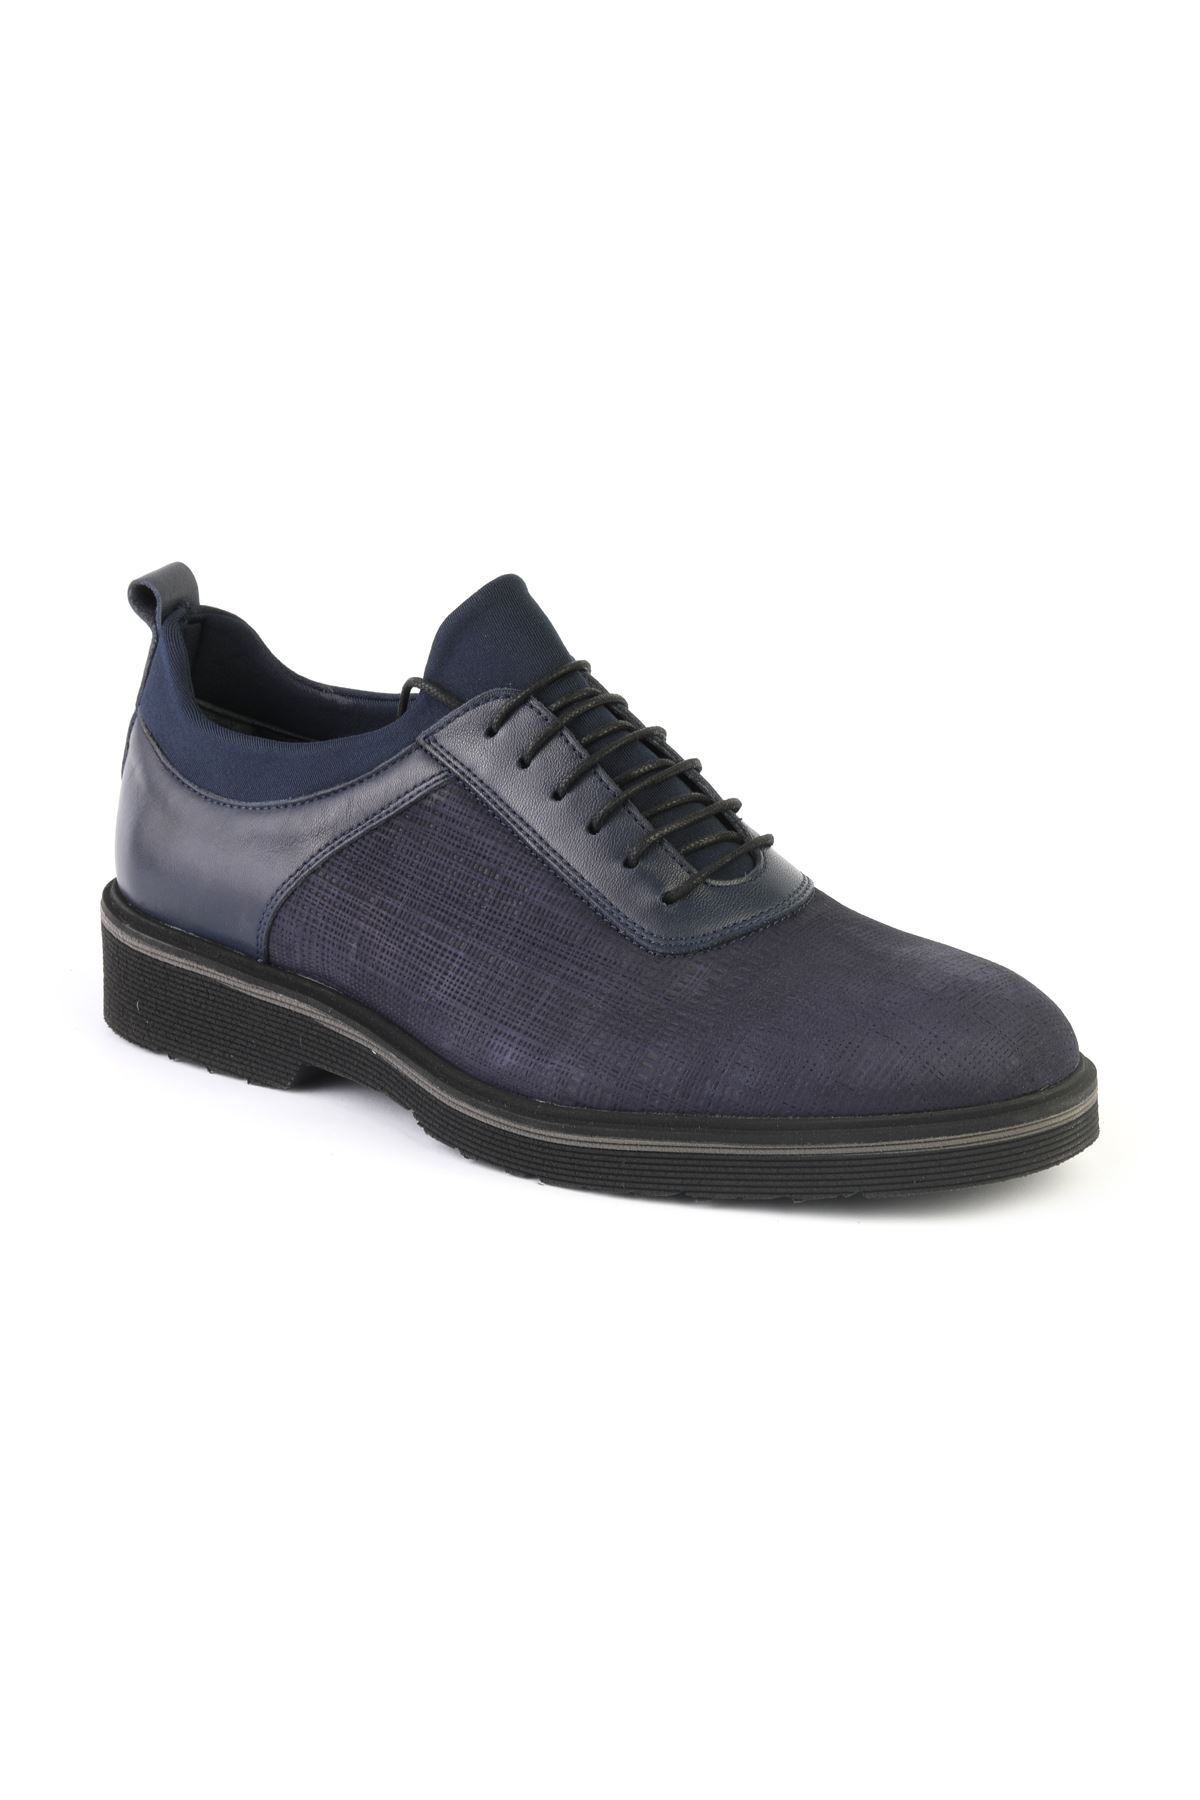 Libero T1137 Navy Blue Casual Shoes